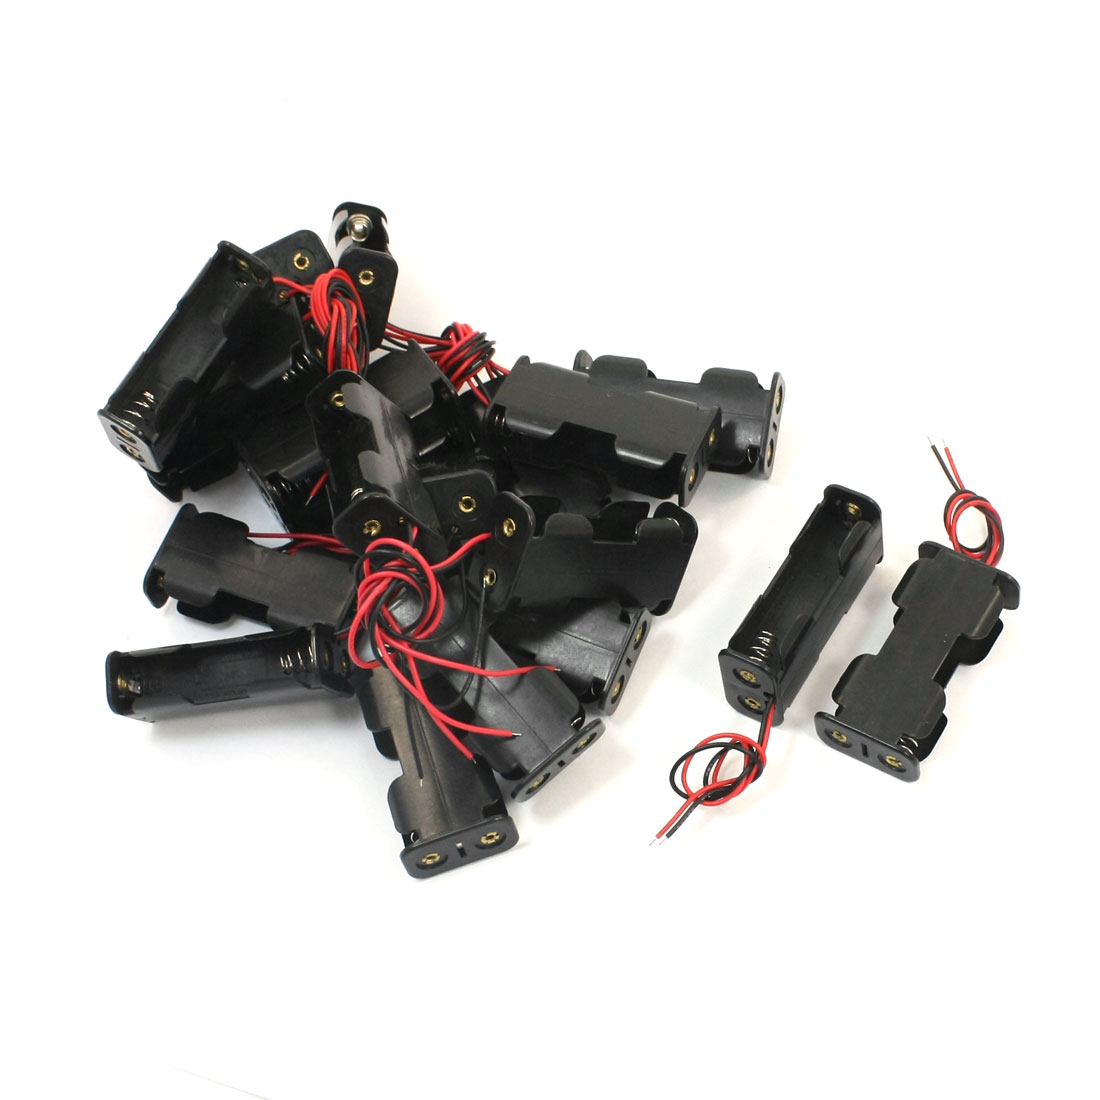 20 Pcs Spring Loaded Two Wire Dual Sides Black Plastic Shell 2 x 1.5V AA Battery Holder Case Storage Box